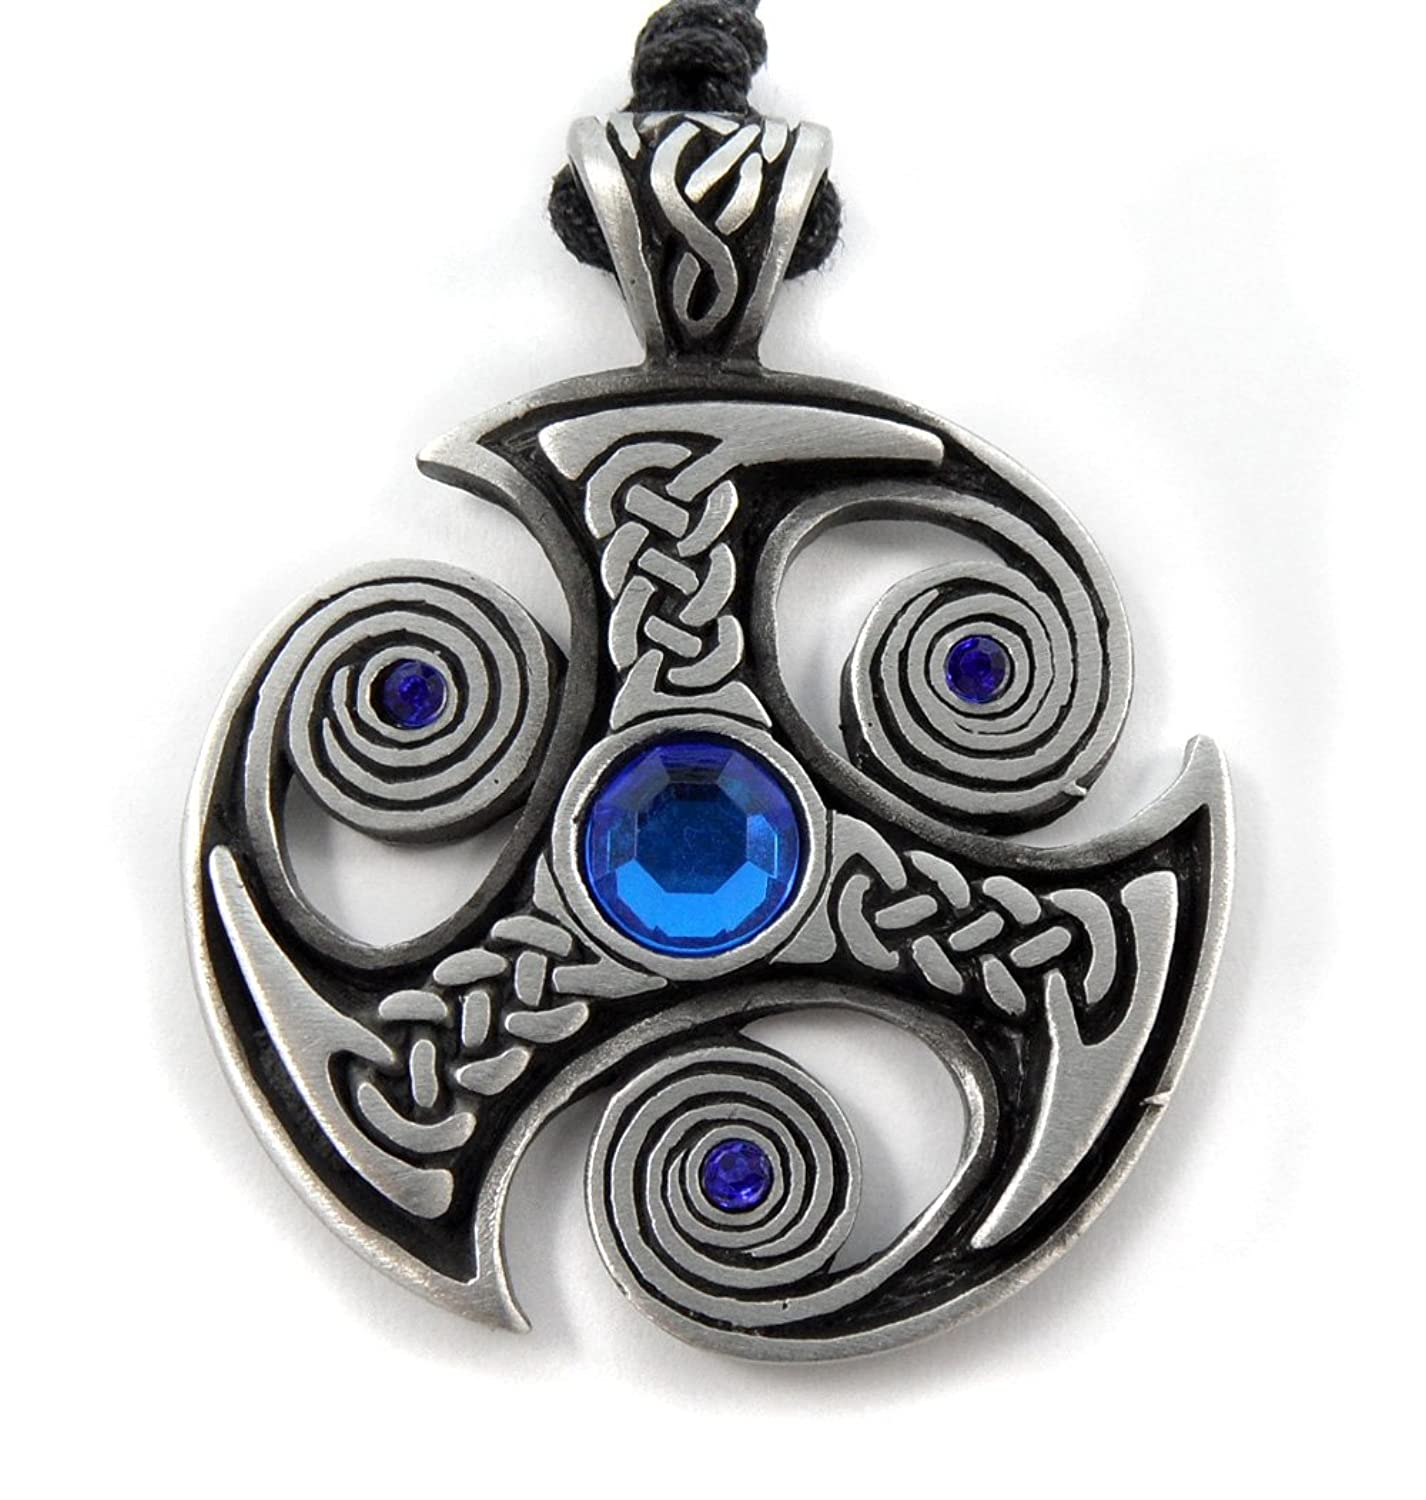 Mystical magical pewter celtic nordic viking runic druid runes mystical magical pewter blue trefot viking nordic spiral celtic norse pagan pendant aloadofball Image collections